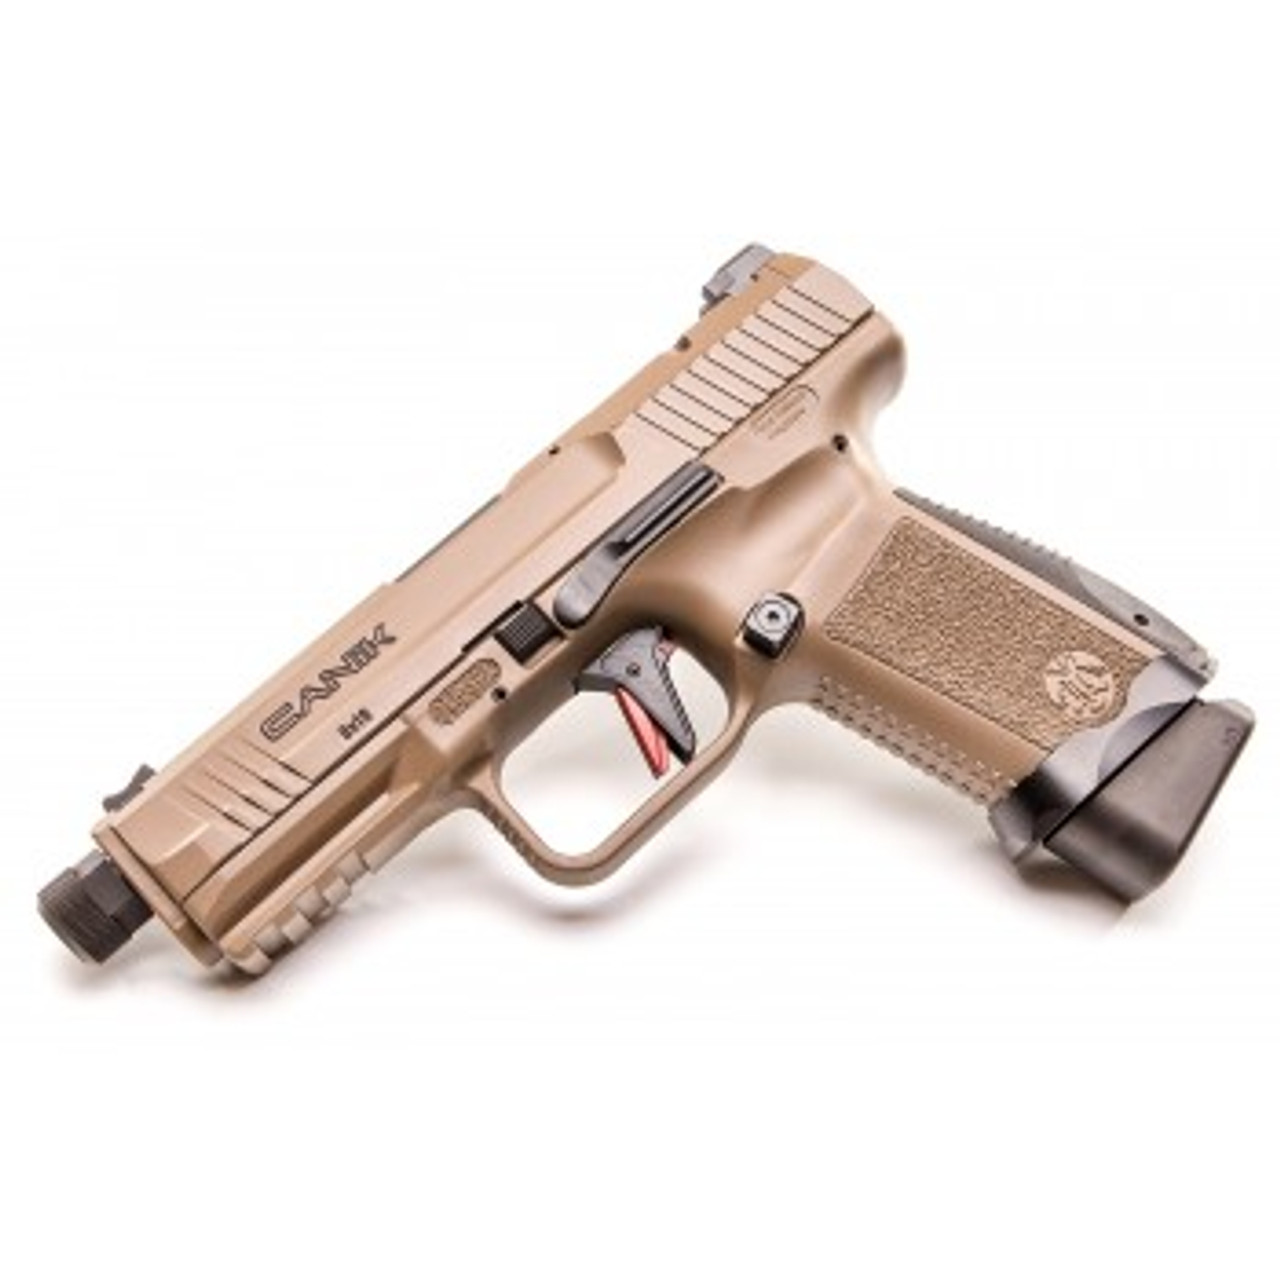 "Canik TPSF Elite Combat Model Semi-Auto Pistol, 9mm, 4.73"" Barrel, 10 Rounds, Polymer Frame"